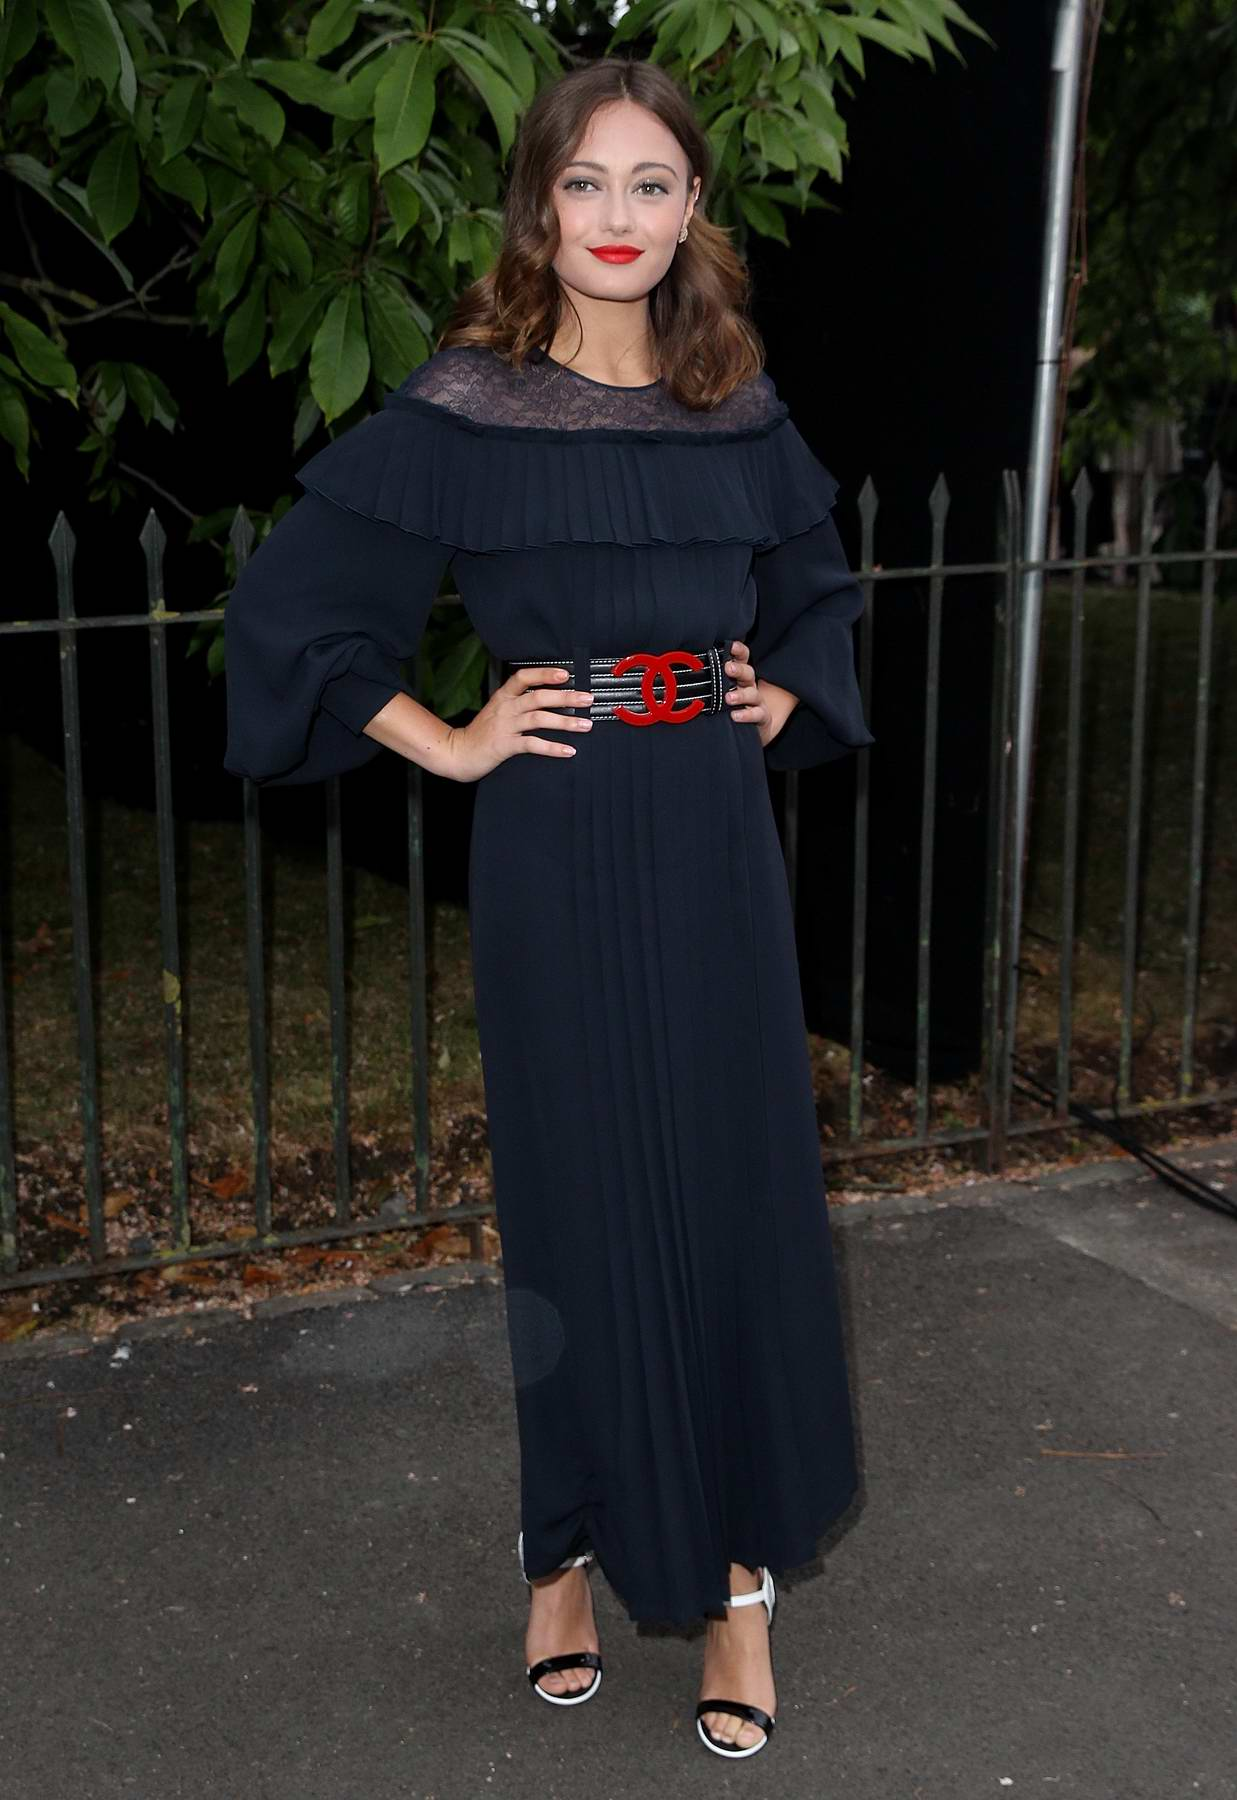 Ella Purnell at the Serpentine Galleries Summer Party in London